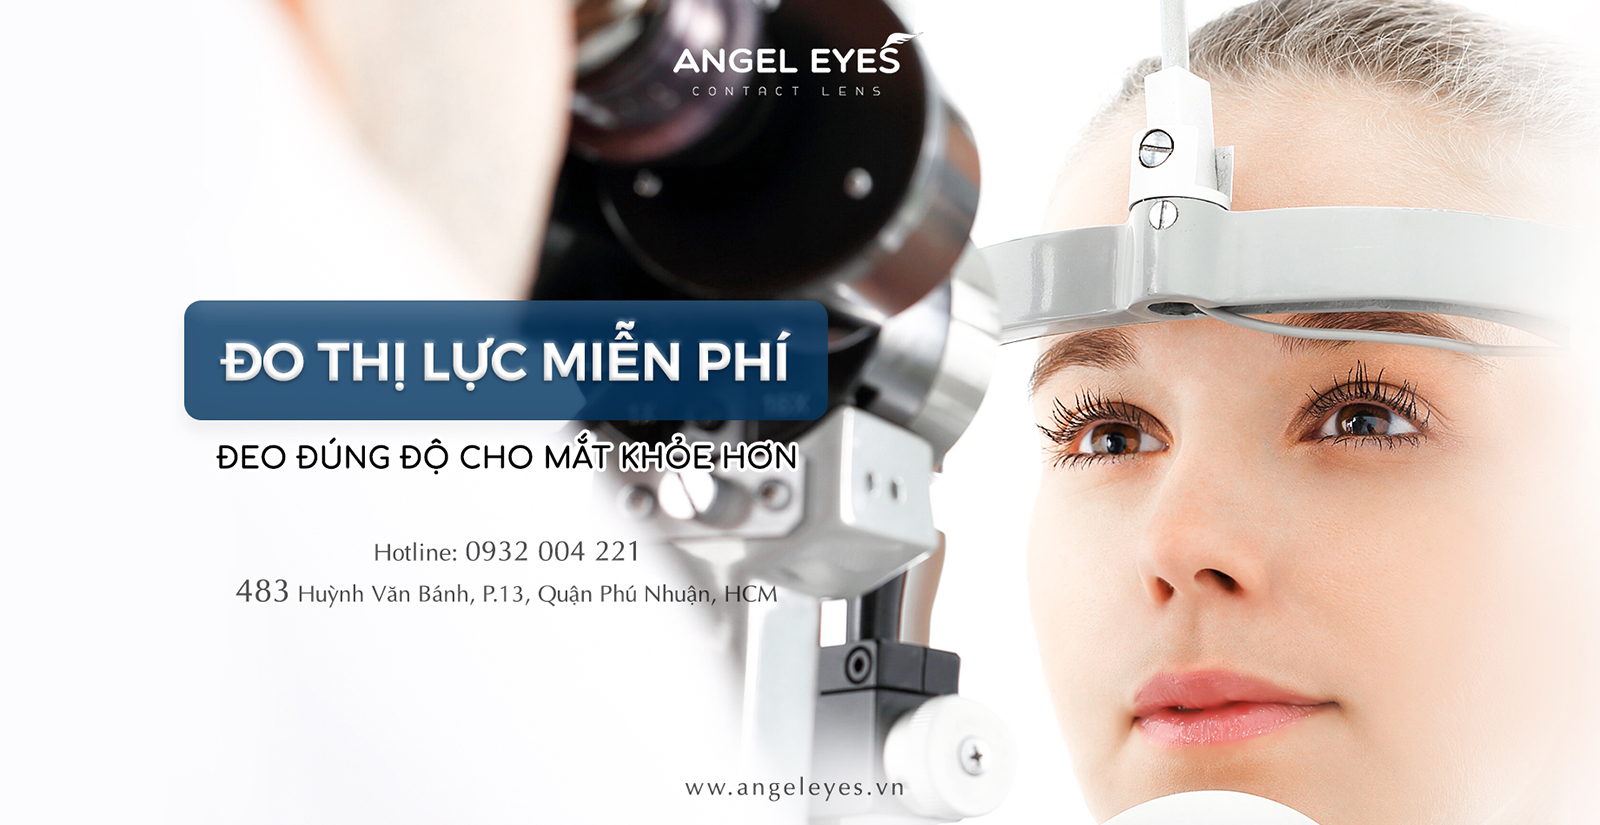 Angel Eyes - All you need for contact lens